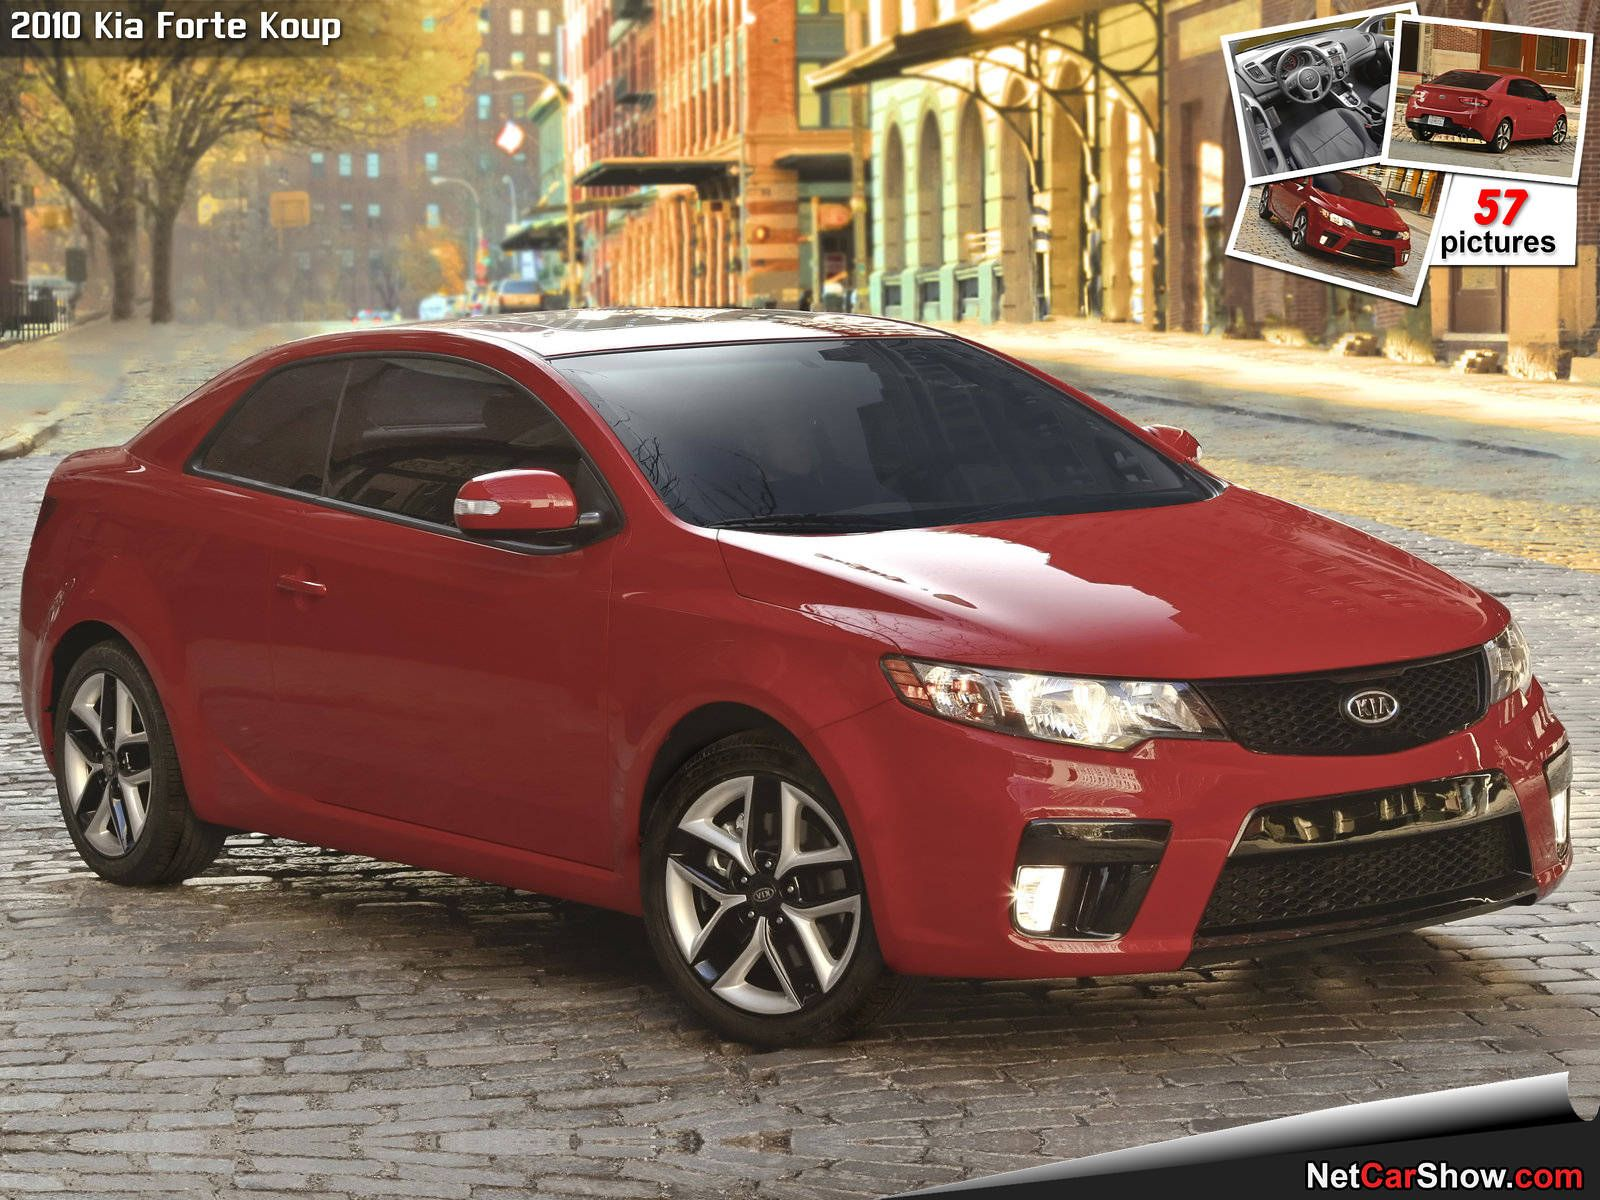 0ed56f0de6964005567d5fcee78ff00a Interesting Info About Kia forte Ex 2010 with Interesting Images Cars Review